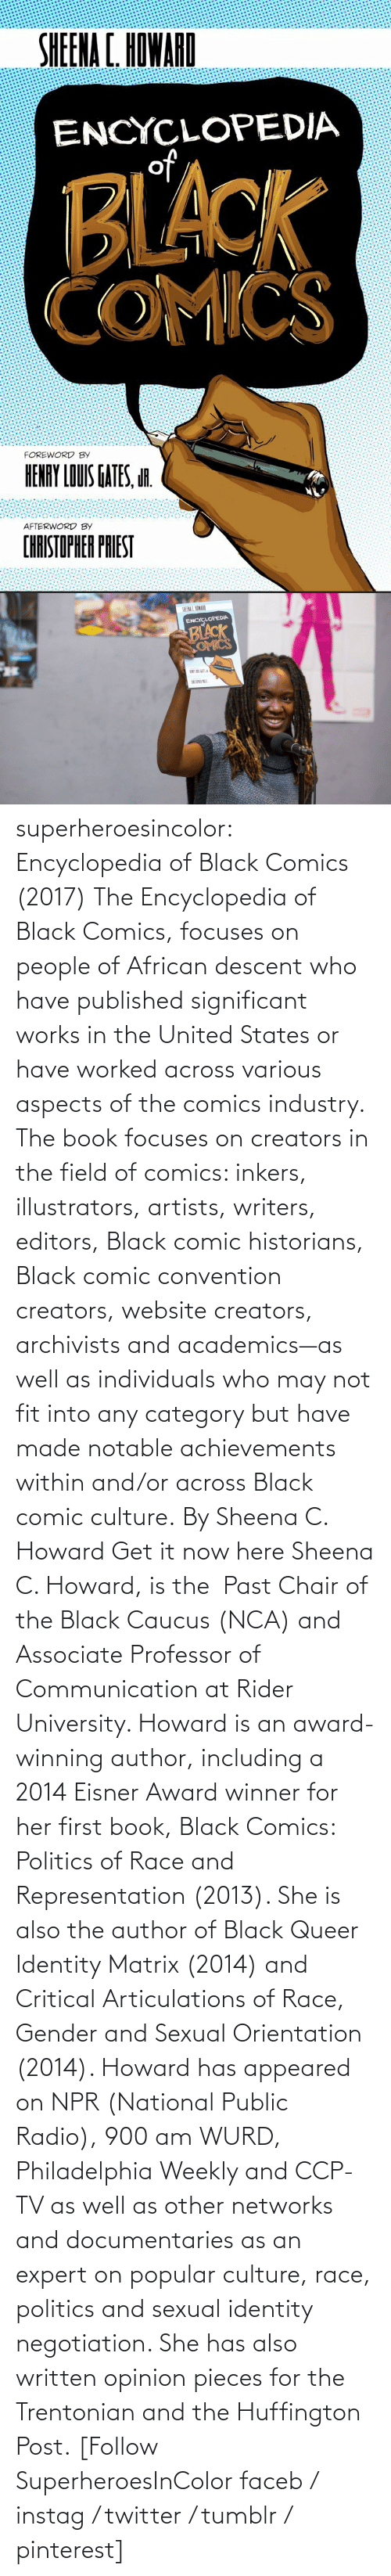 Also: superheroesincolor: Encyclopedia of Black Comics (2017) The Encyclopedia of Black Comics, focuses on people of African descent who have published significant works in the United States or have worked across various aspects of the comics industry.  The book focuses on creators in the field of comics: inkers, illustrators, artists, writers, editors, Black comic historians, Black comic convention creators, website creators, archivists and academics—as well as individuals who may not fit into any category but have made notable achievements within and/or across Black comic culture. By Sheena C. Howard Get it now here  Sheena C. Howard, is the  Past Chair of the Black Caucus (NCA) and Associate Professor of Communication at Rider University. Howard is an award-winning author, including a 2014 Eisner Award winner for her first book, Black Comics: Politics of Race and Representation (2013). She is also the author of Black Queer Identity Matrix (2014) and Critical Articulations of Race, Gender and Sexual Orientation (2014). Howard has appeared on NPR (National Public Radio), 900 am WURD, Philadelphia Weekly and CCP-TV as well as other networks and documentaries as an expert on popular culture, race, politics and sexual identity negotiation. She has also written opinion pieces for the Trentonian and the Huffington Post.   [Follow SuperheroesInColor faceb / instag / twitter / tumblr / pinterest]